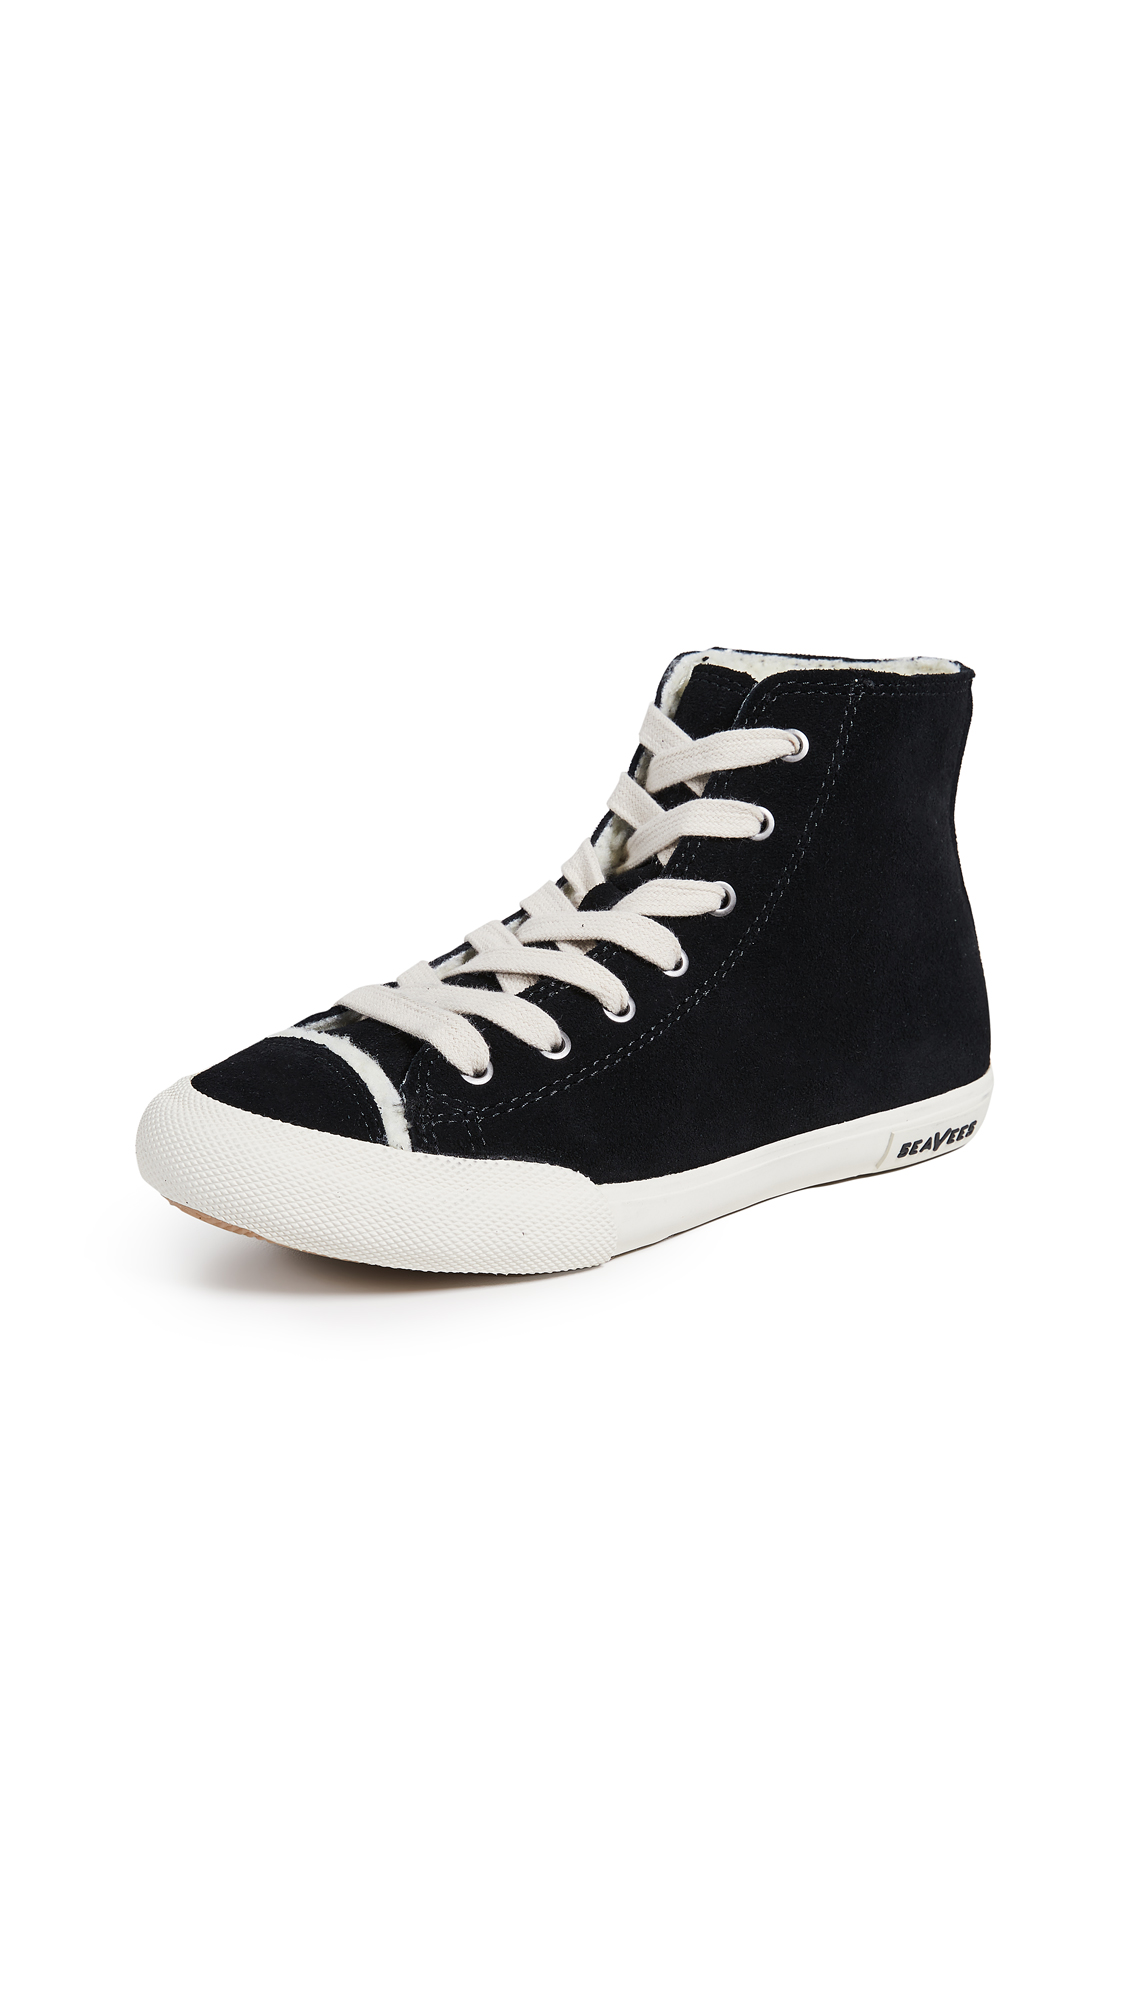 SeaVees Army Issue High Sneakers - Black